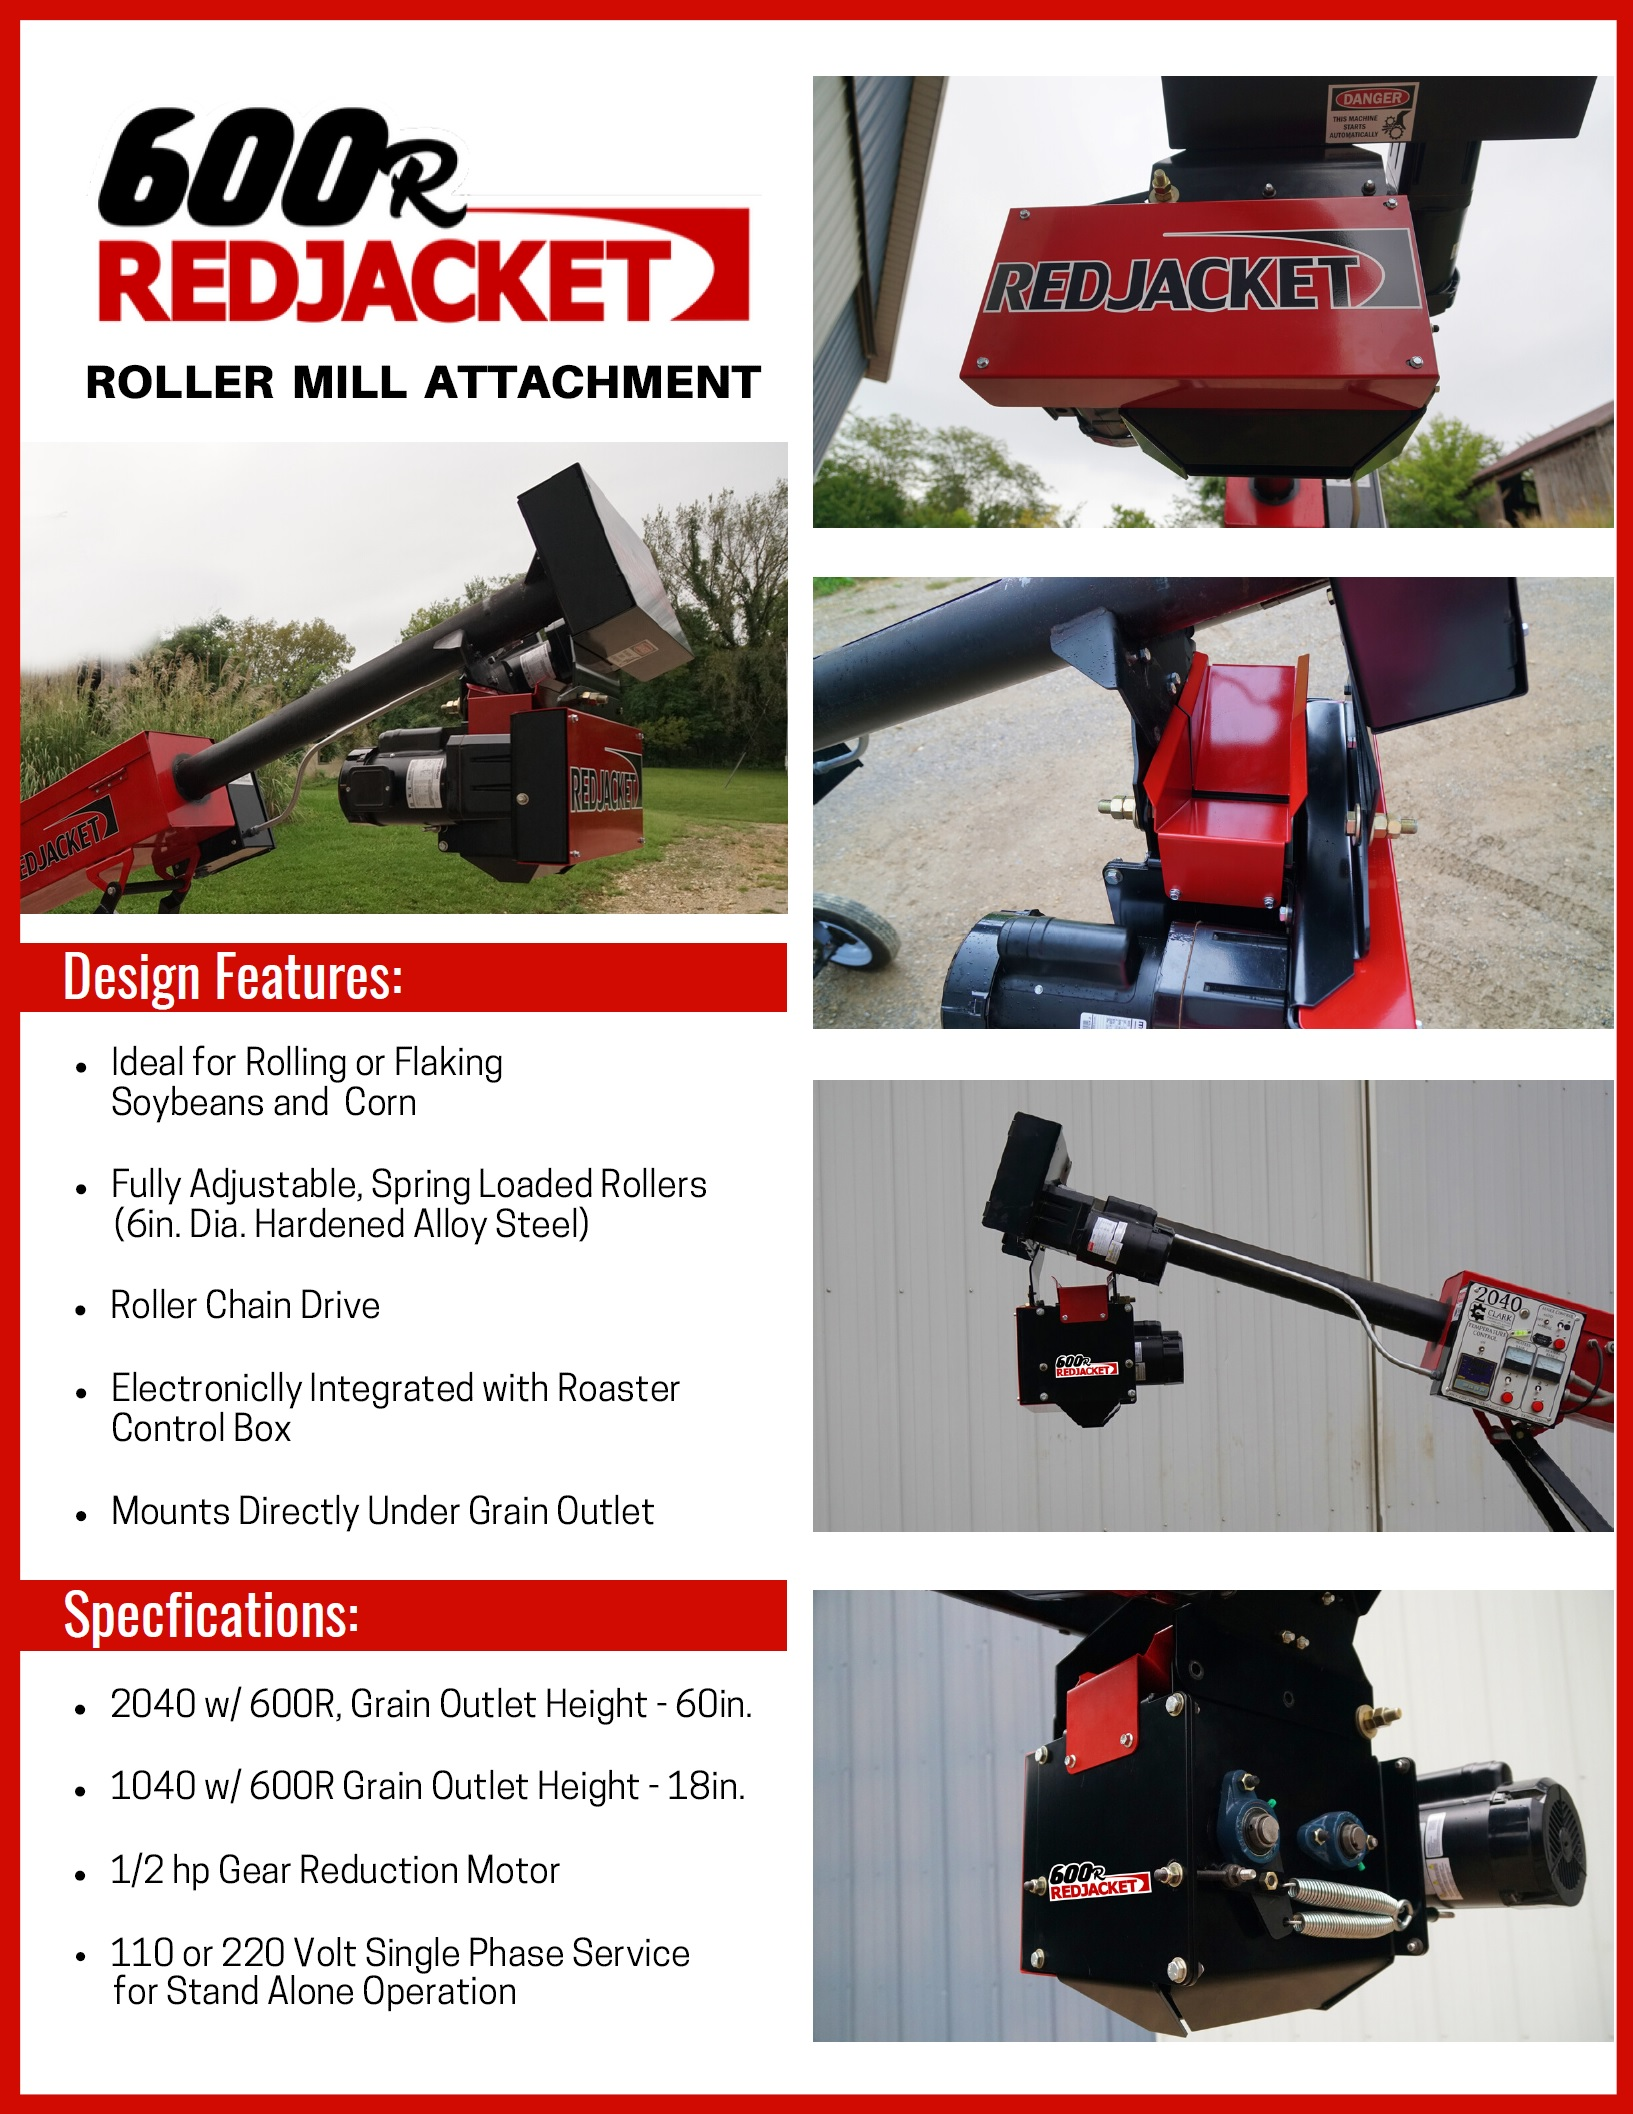 Energrow Red Jacket 600R Roller Attachment Brochure